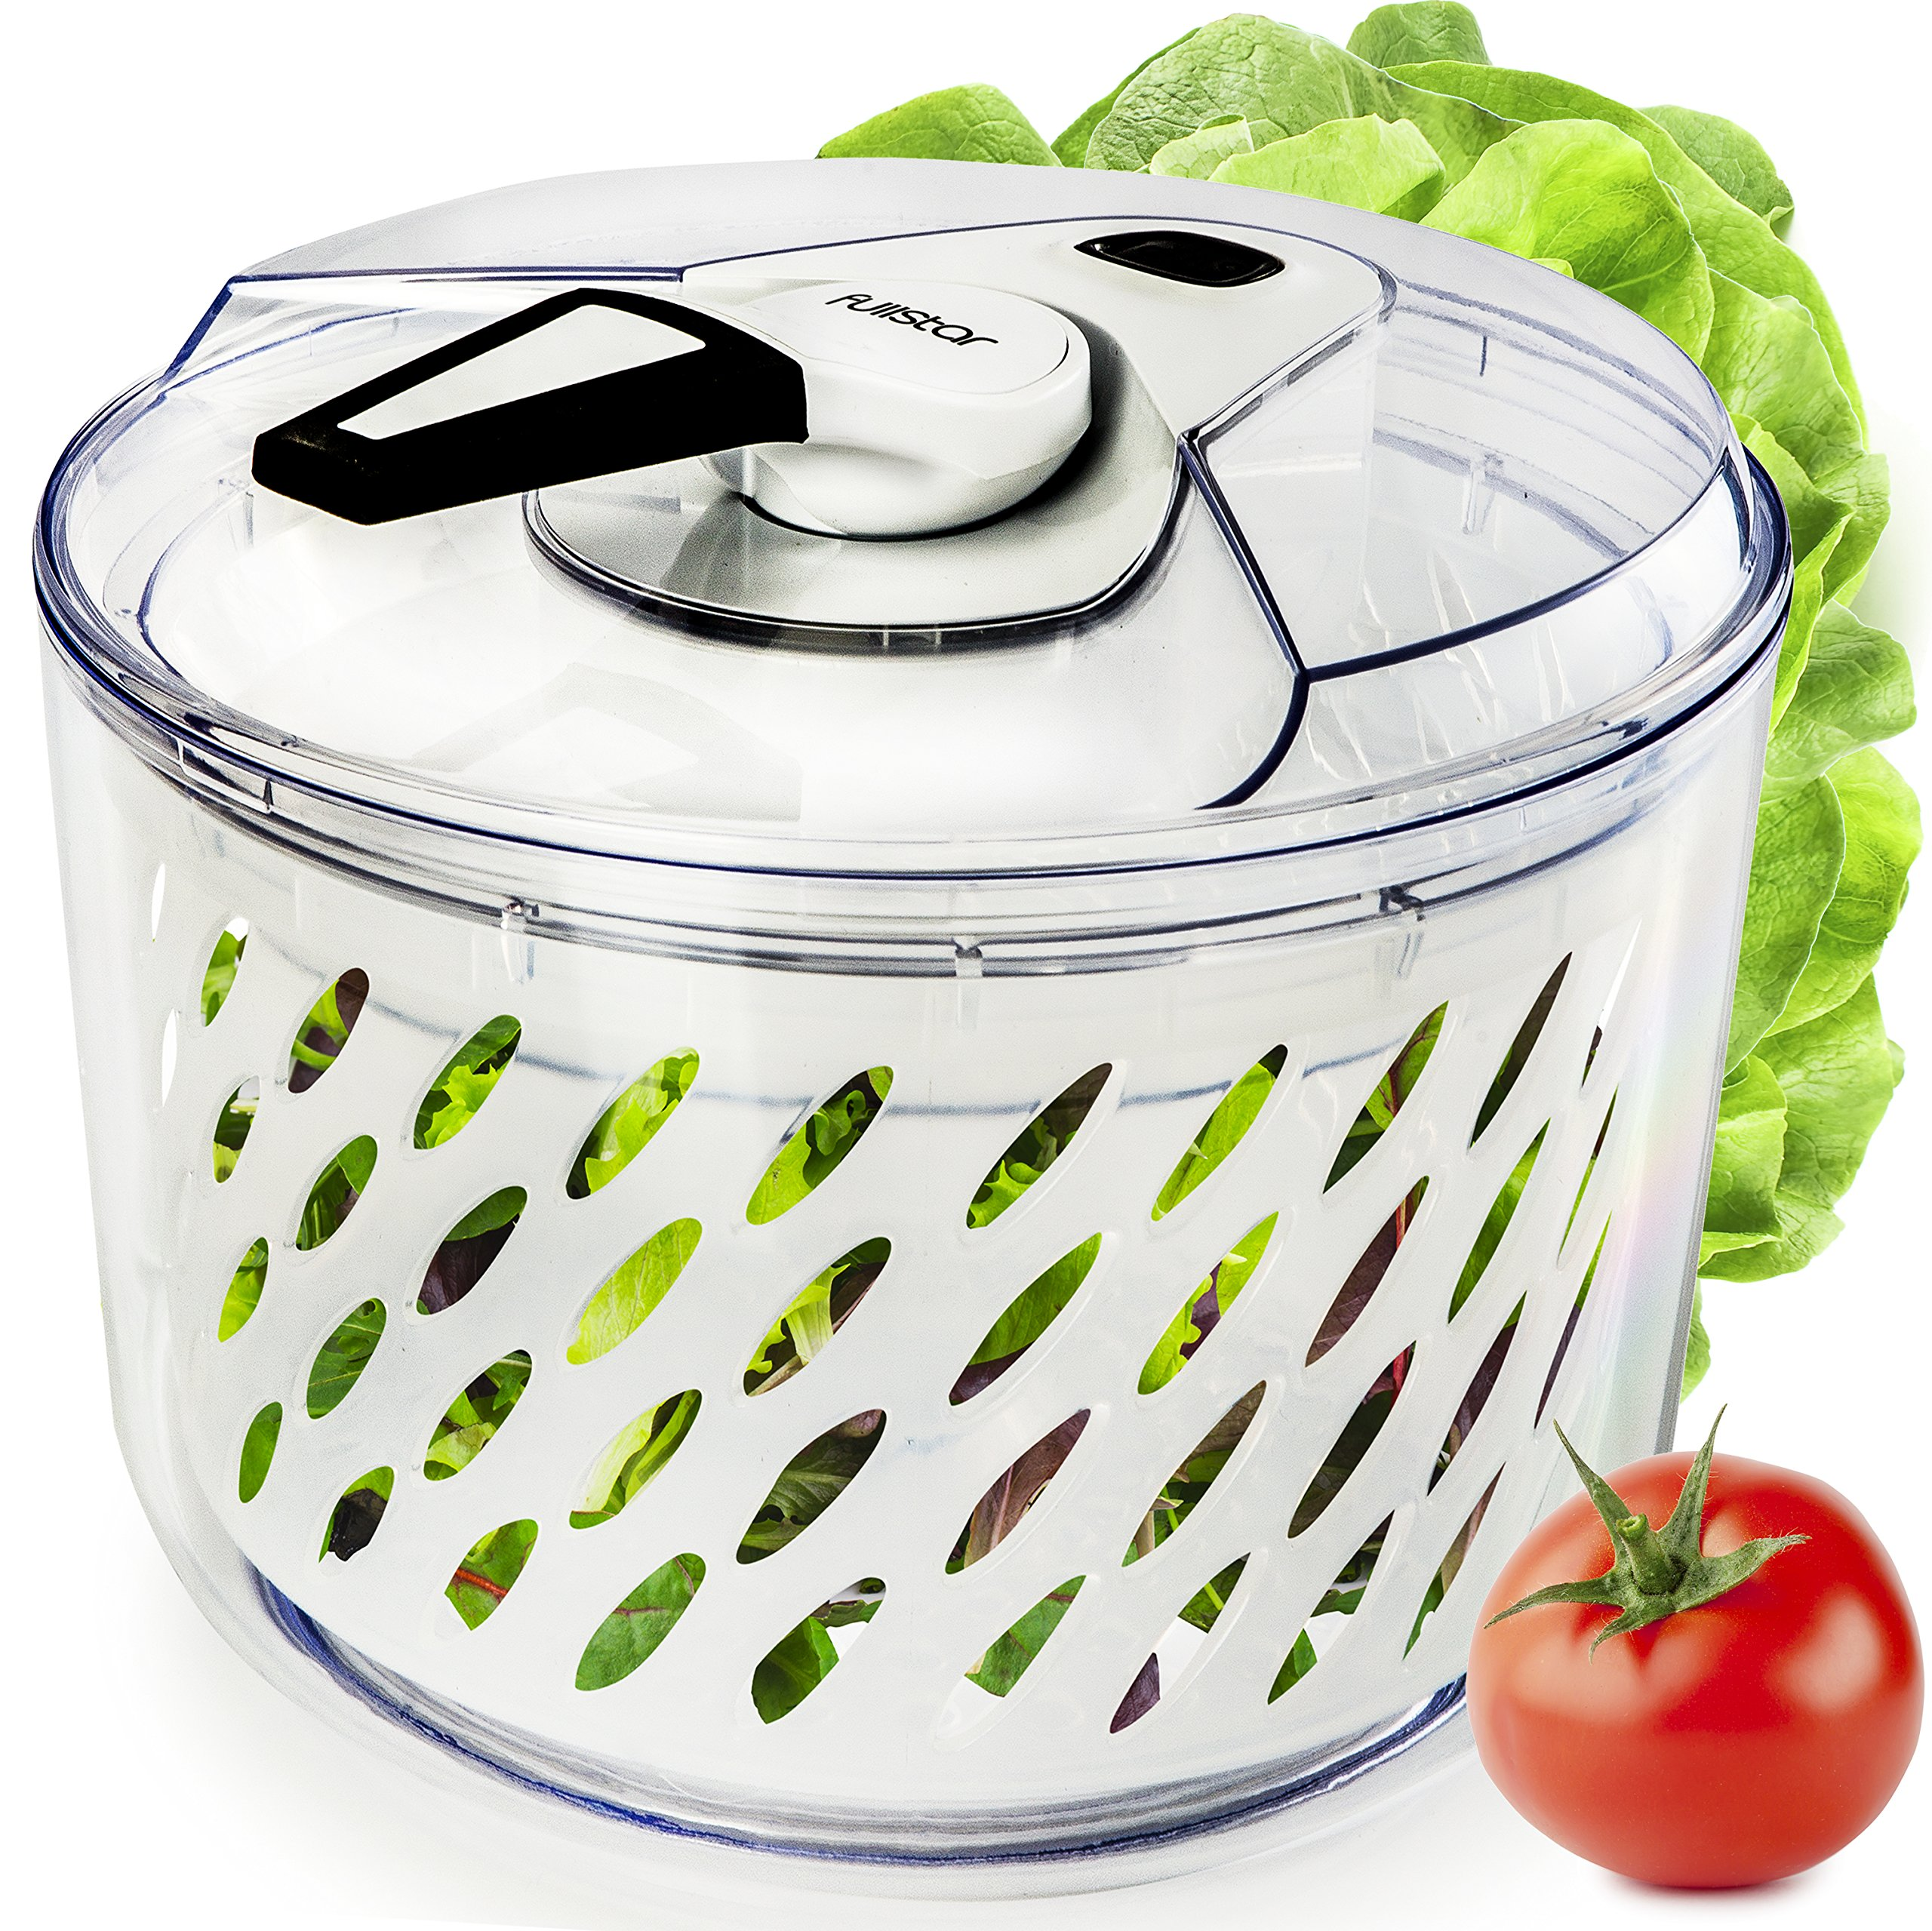 Large Salad Spinner Lettuce Dryer